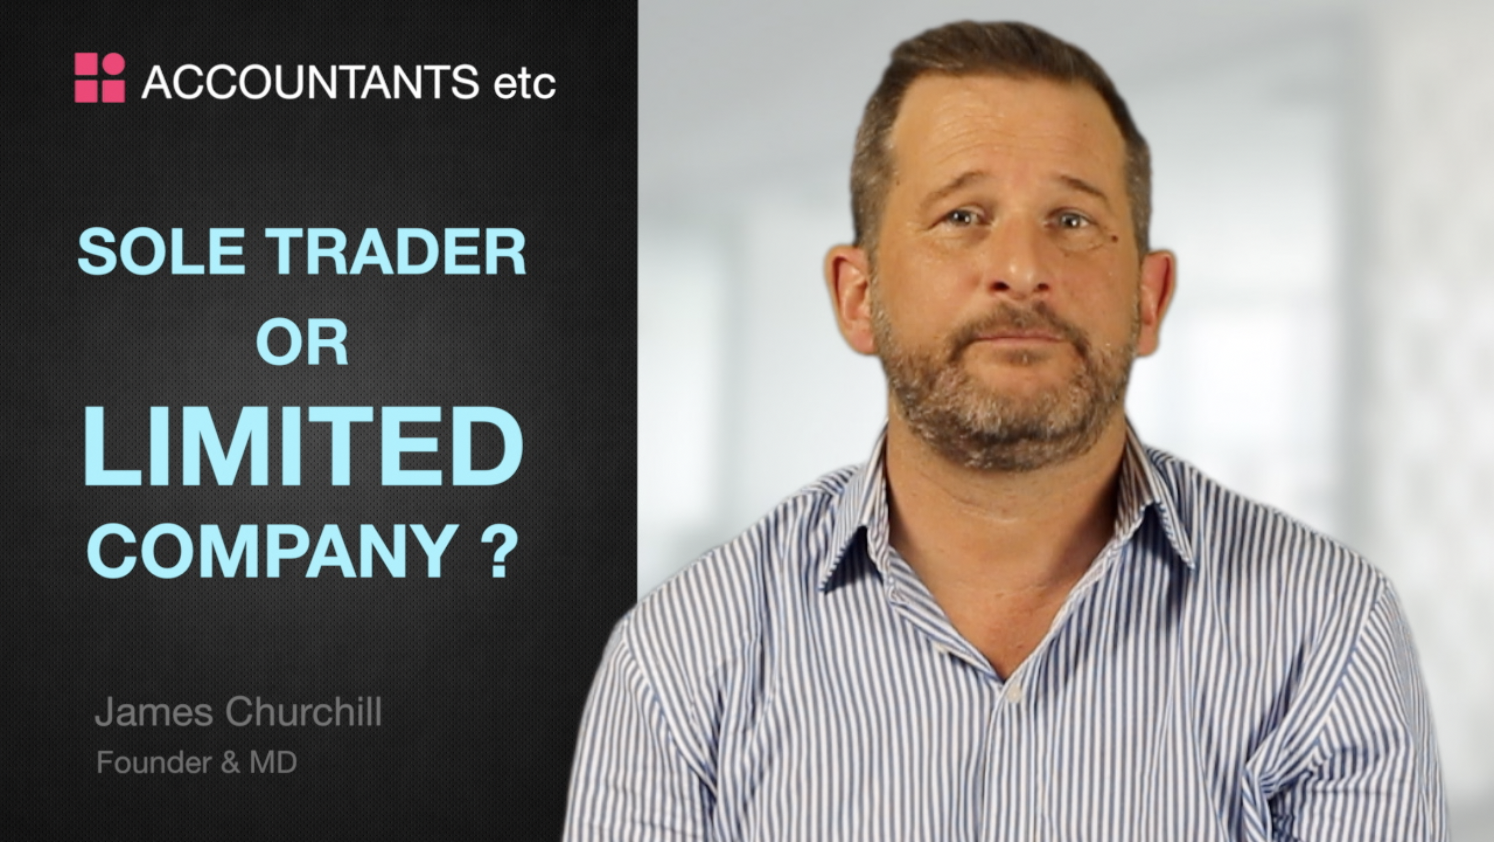 Sole Trader or Limited Company?